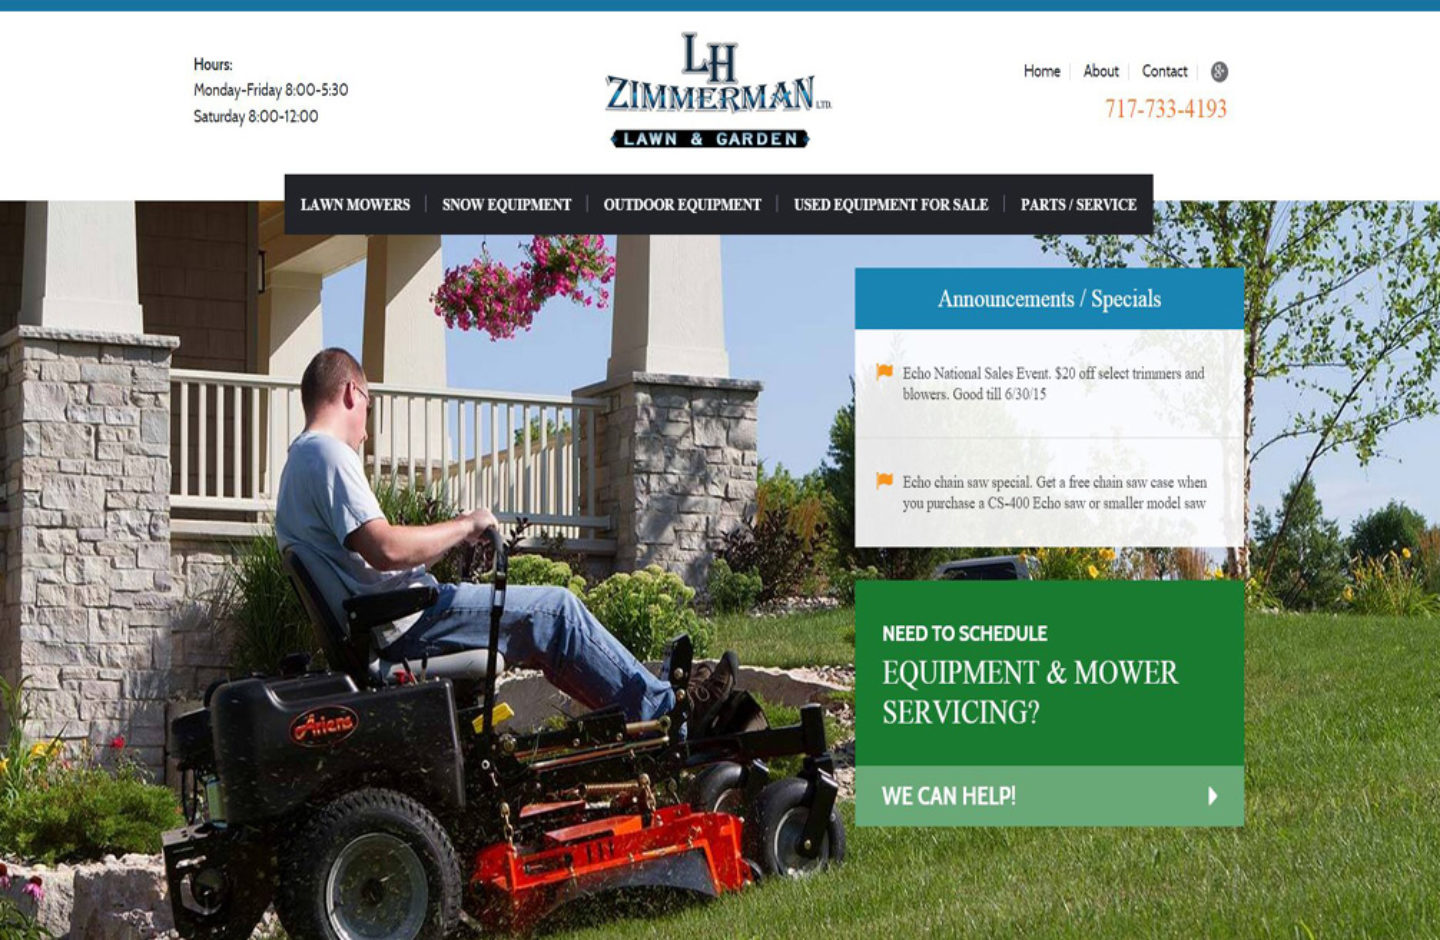 LH Zimmerman Lawn and Garden